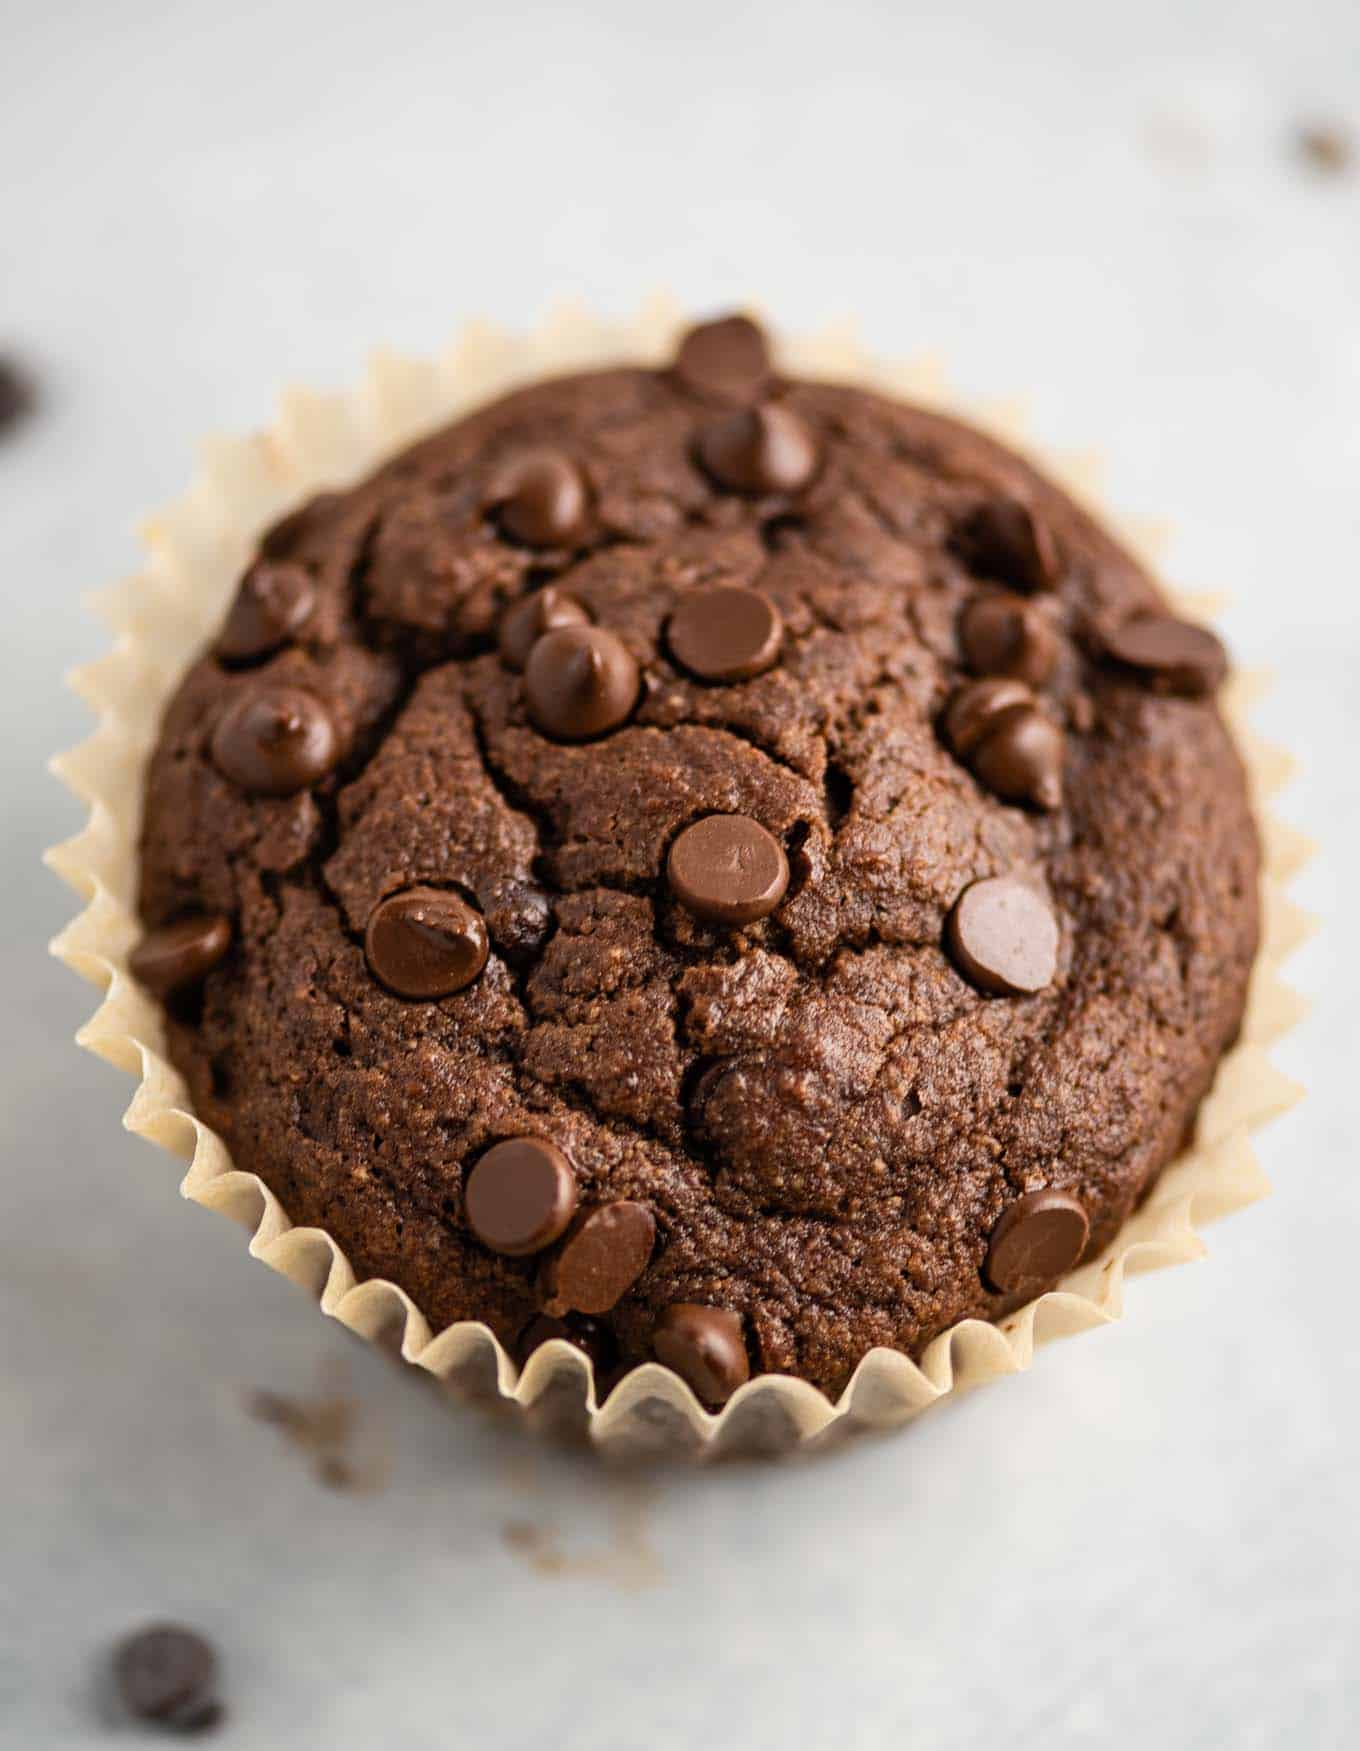 single gluten free chocolate muffin in a parchment paper muffin liner